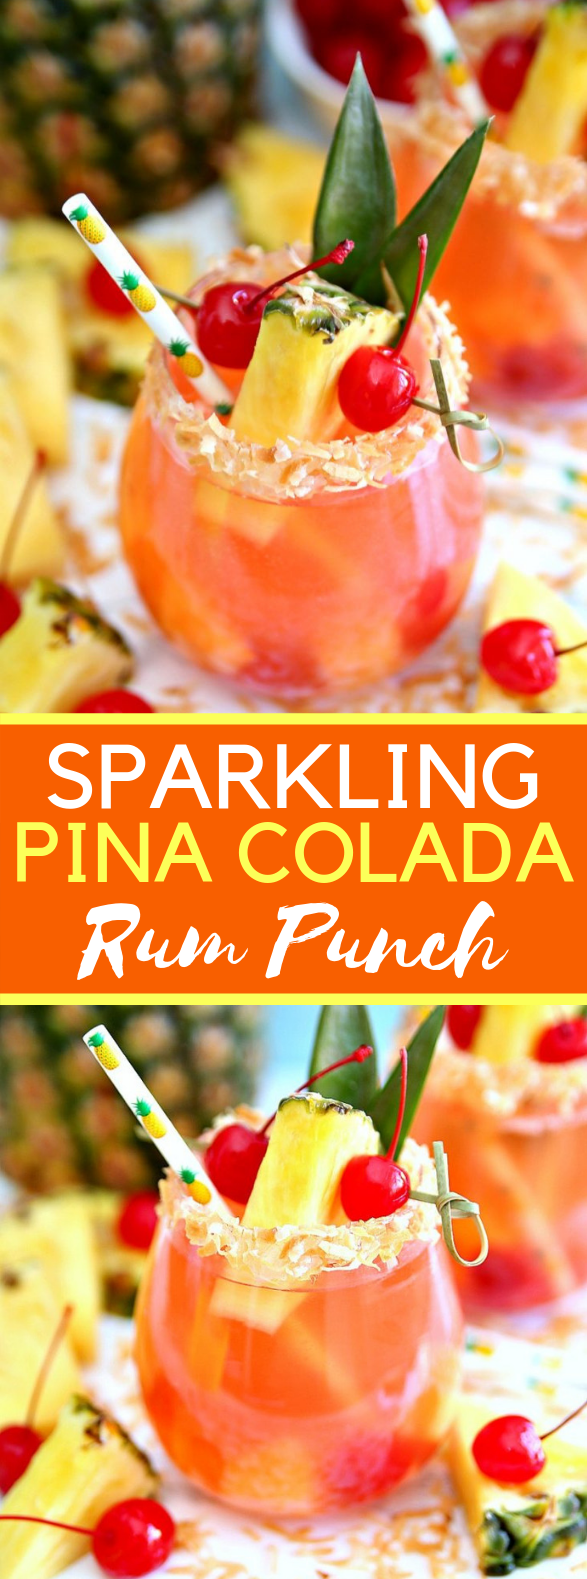 Sparkling Pina Colada Rum Punch #drinks #cocktails